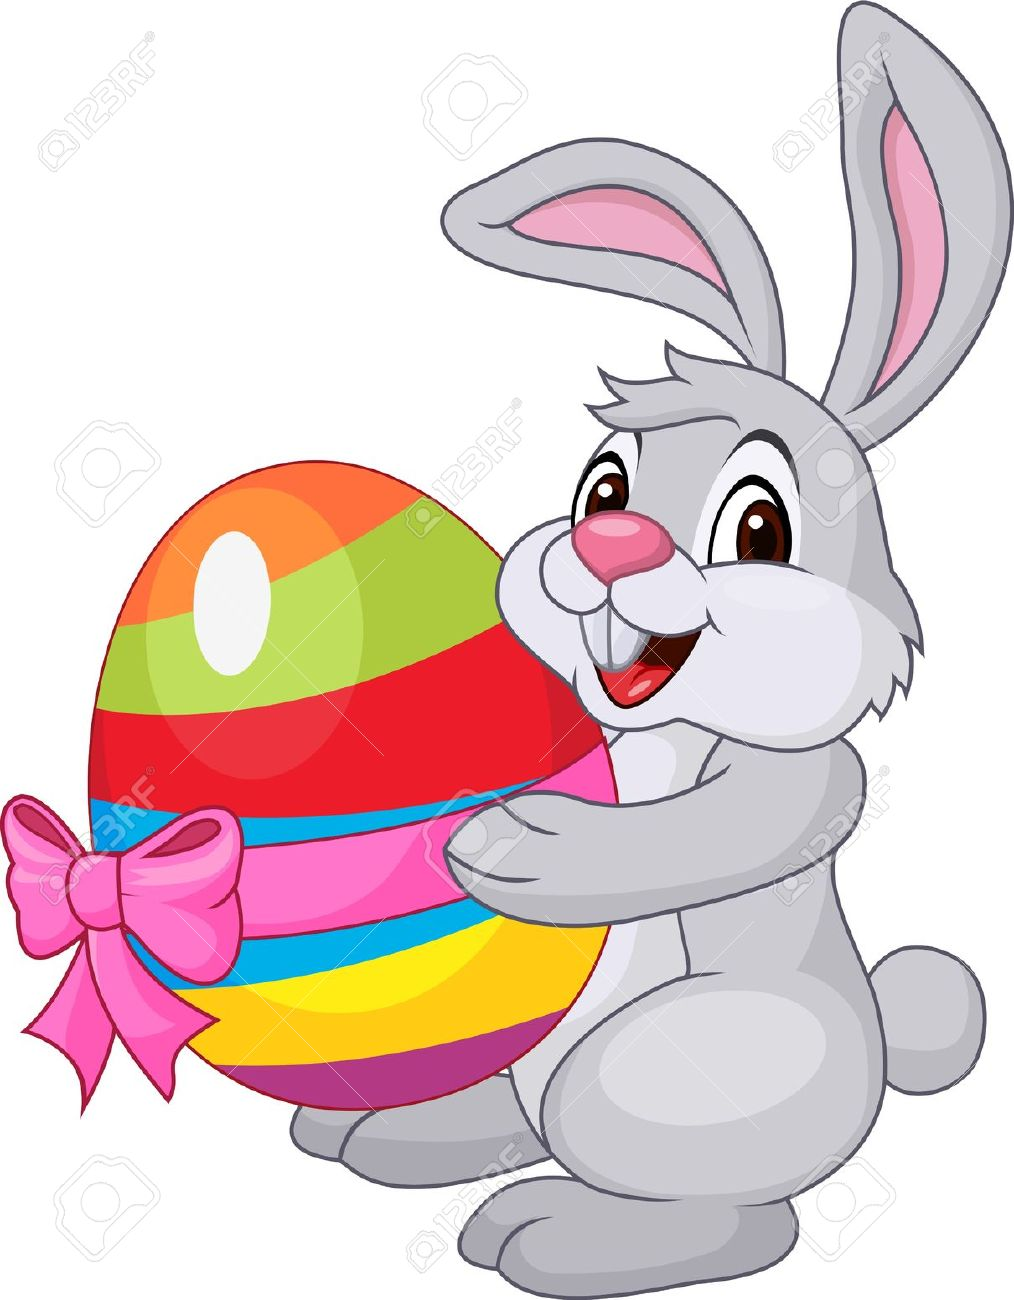 1014x1300 Clipart Easter Bunny Exercising Image